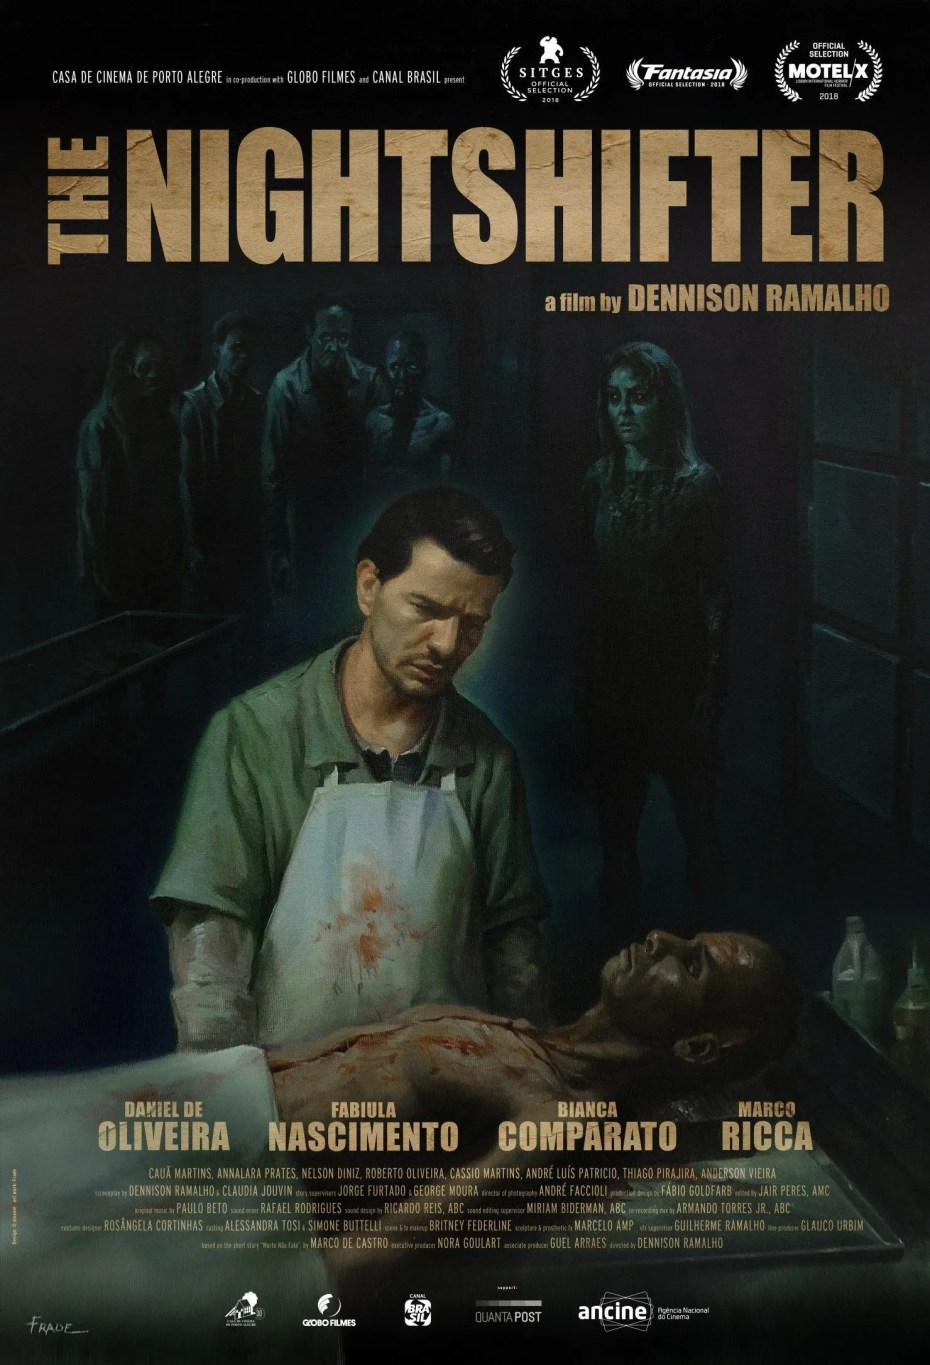 The Nightshifter